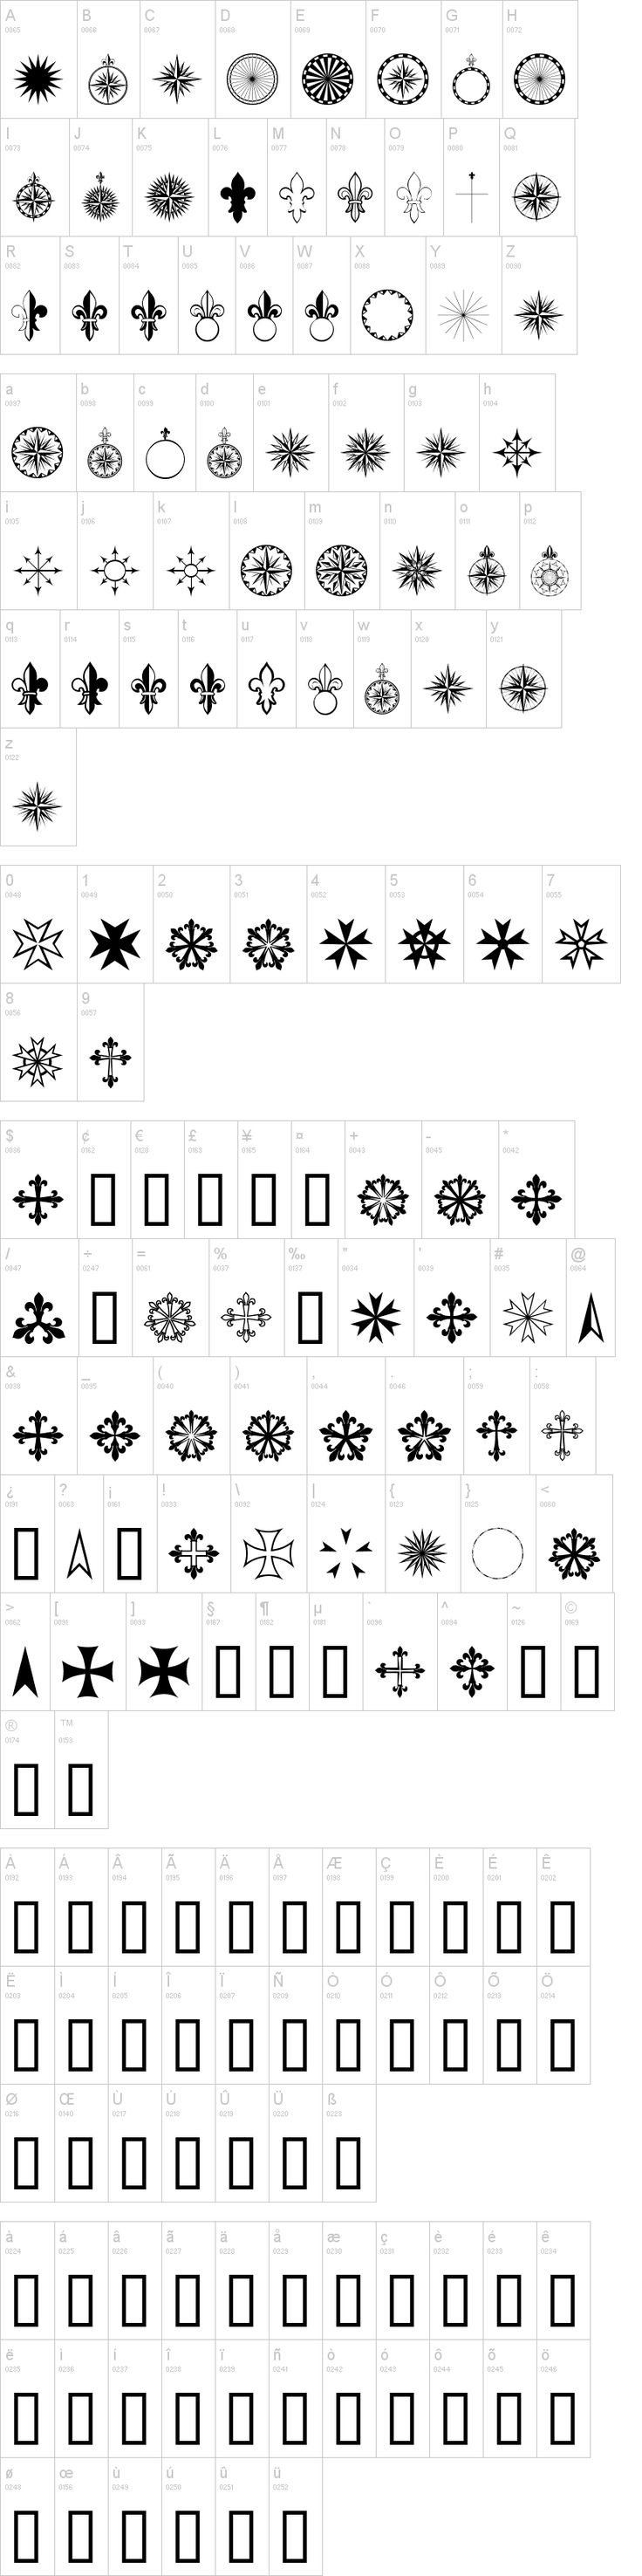 Dingbats - PR Compass Rose Font | dafont.com. Classic compasses, scrolls, fleur de lis. Would be great for travelogues or Boy Scouts.